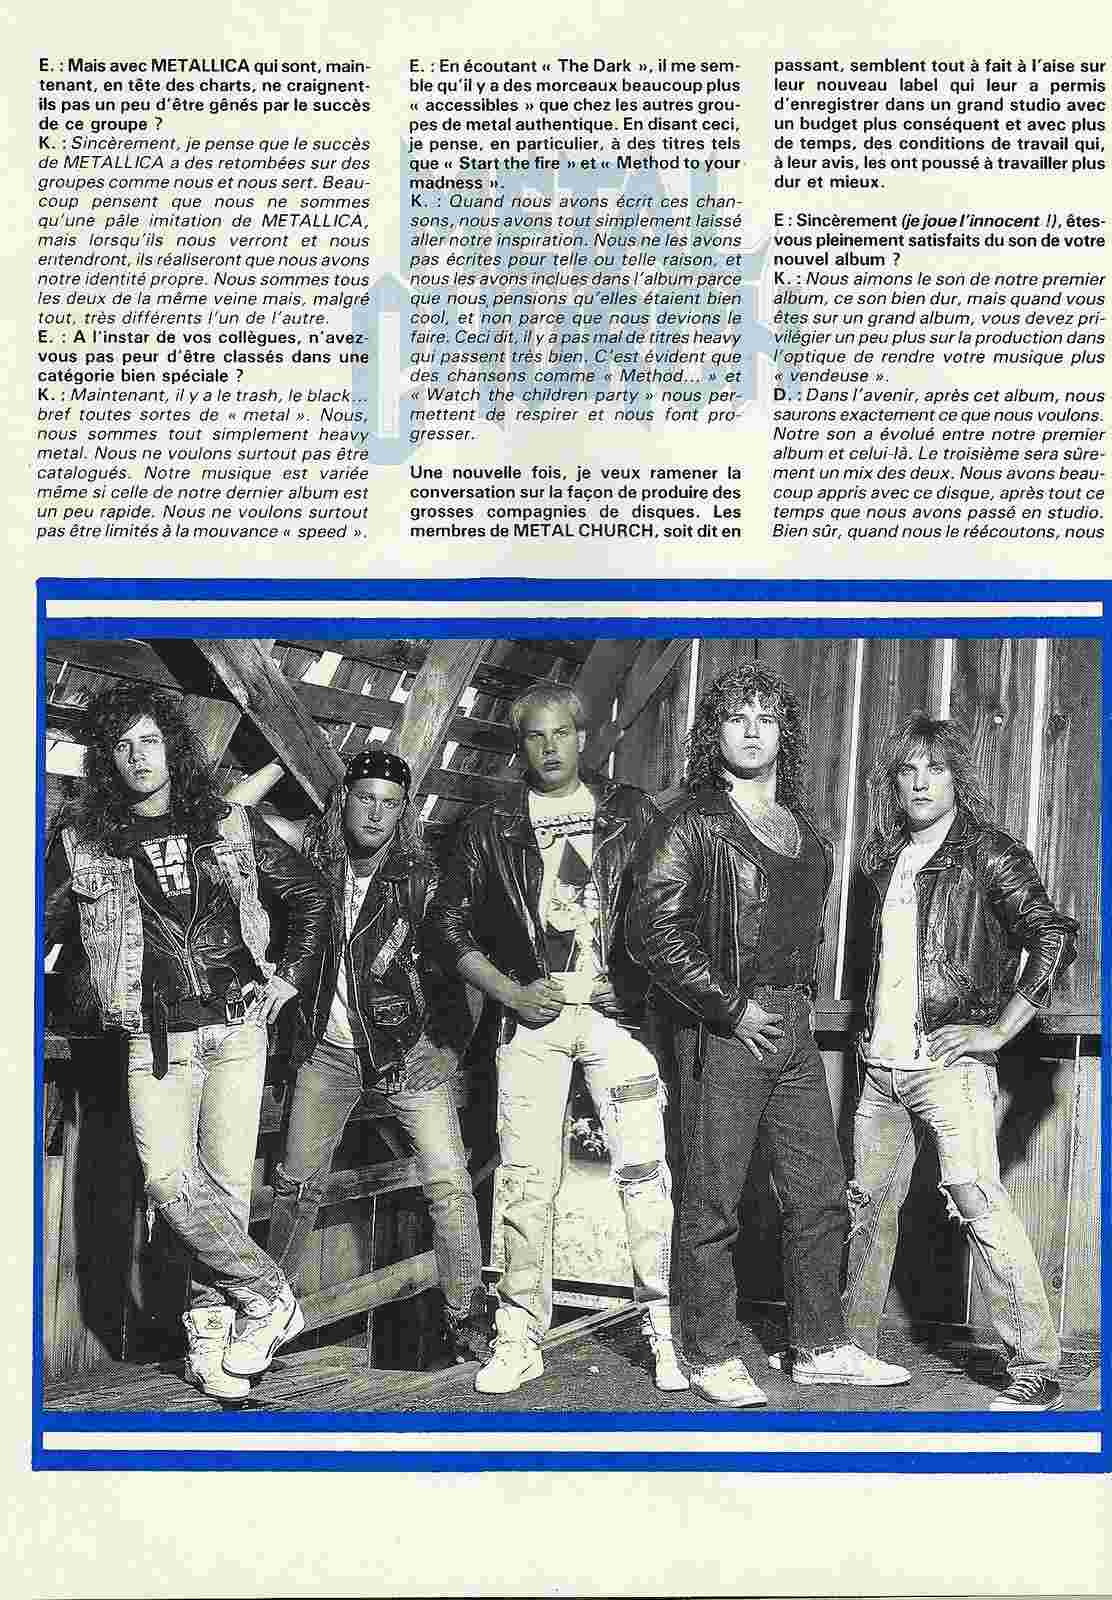 METAL CHURCH ... espoirs 87 (Enfer Magazine Février 1987) Archive à lire Numyri37